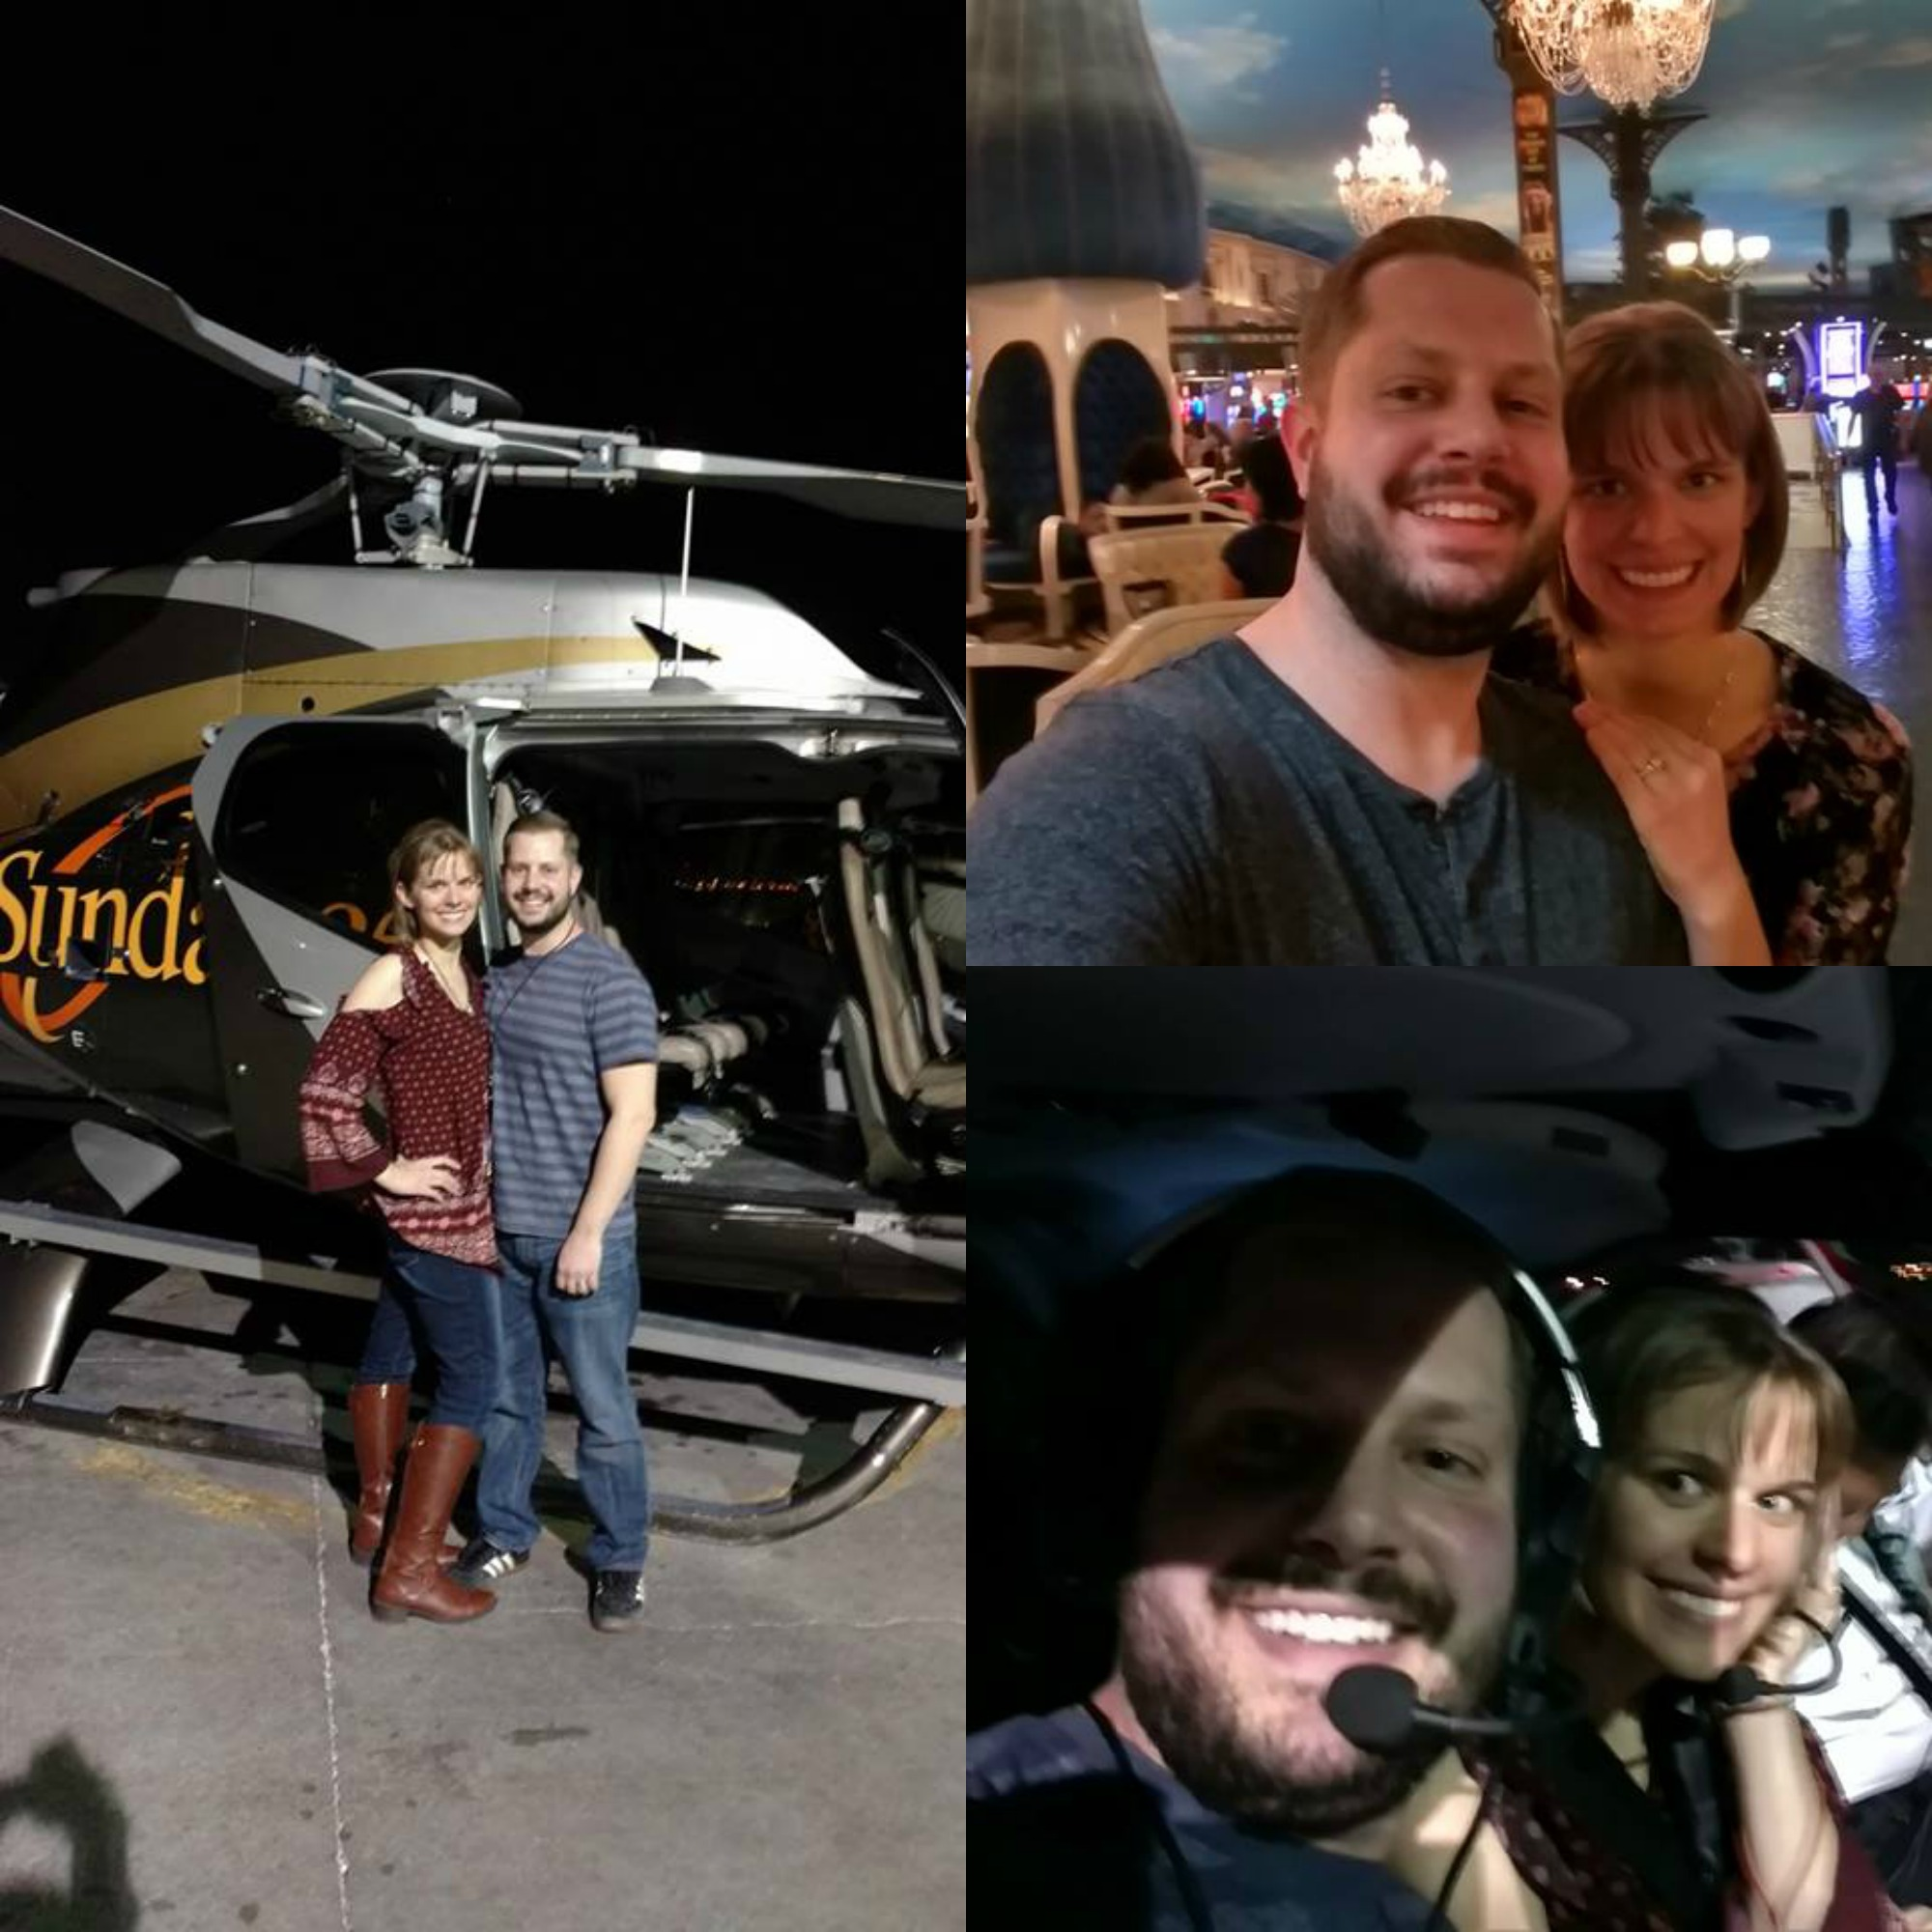 A few little snippets from our 3 nights in Vegas.